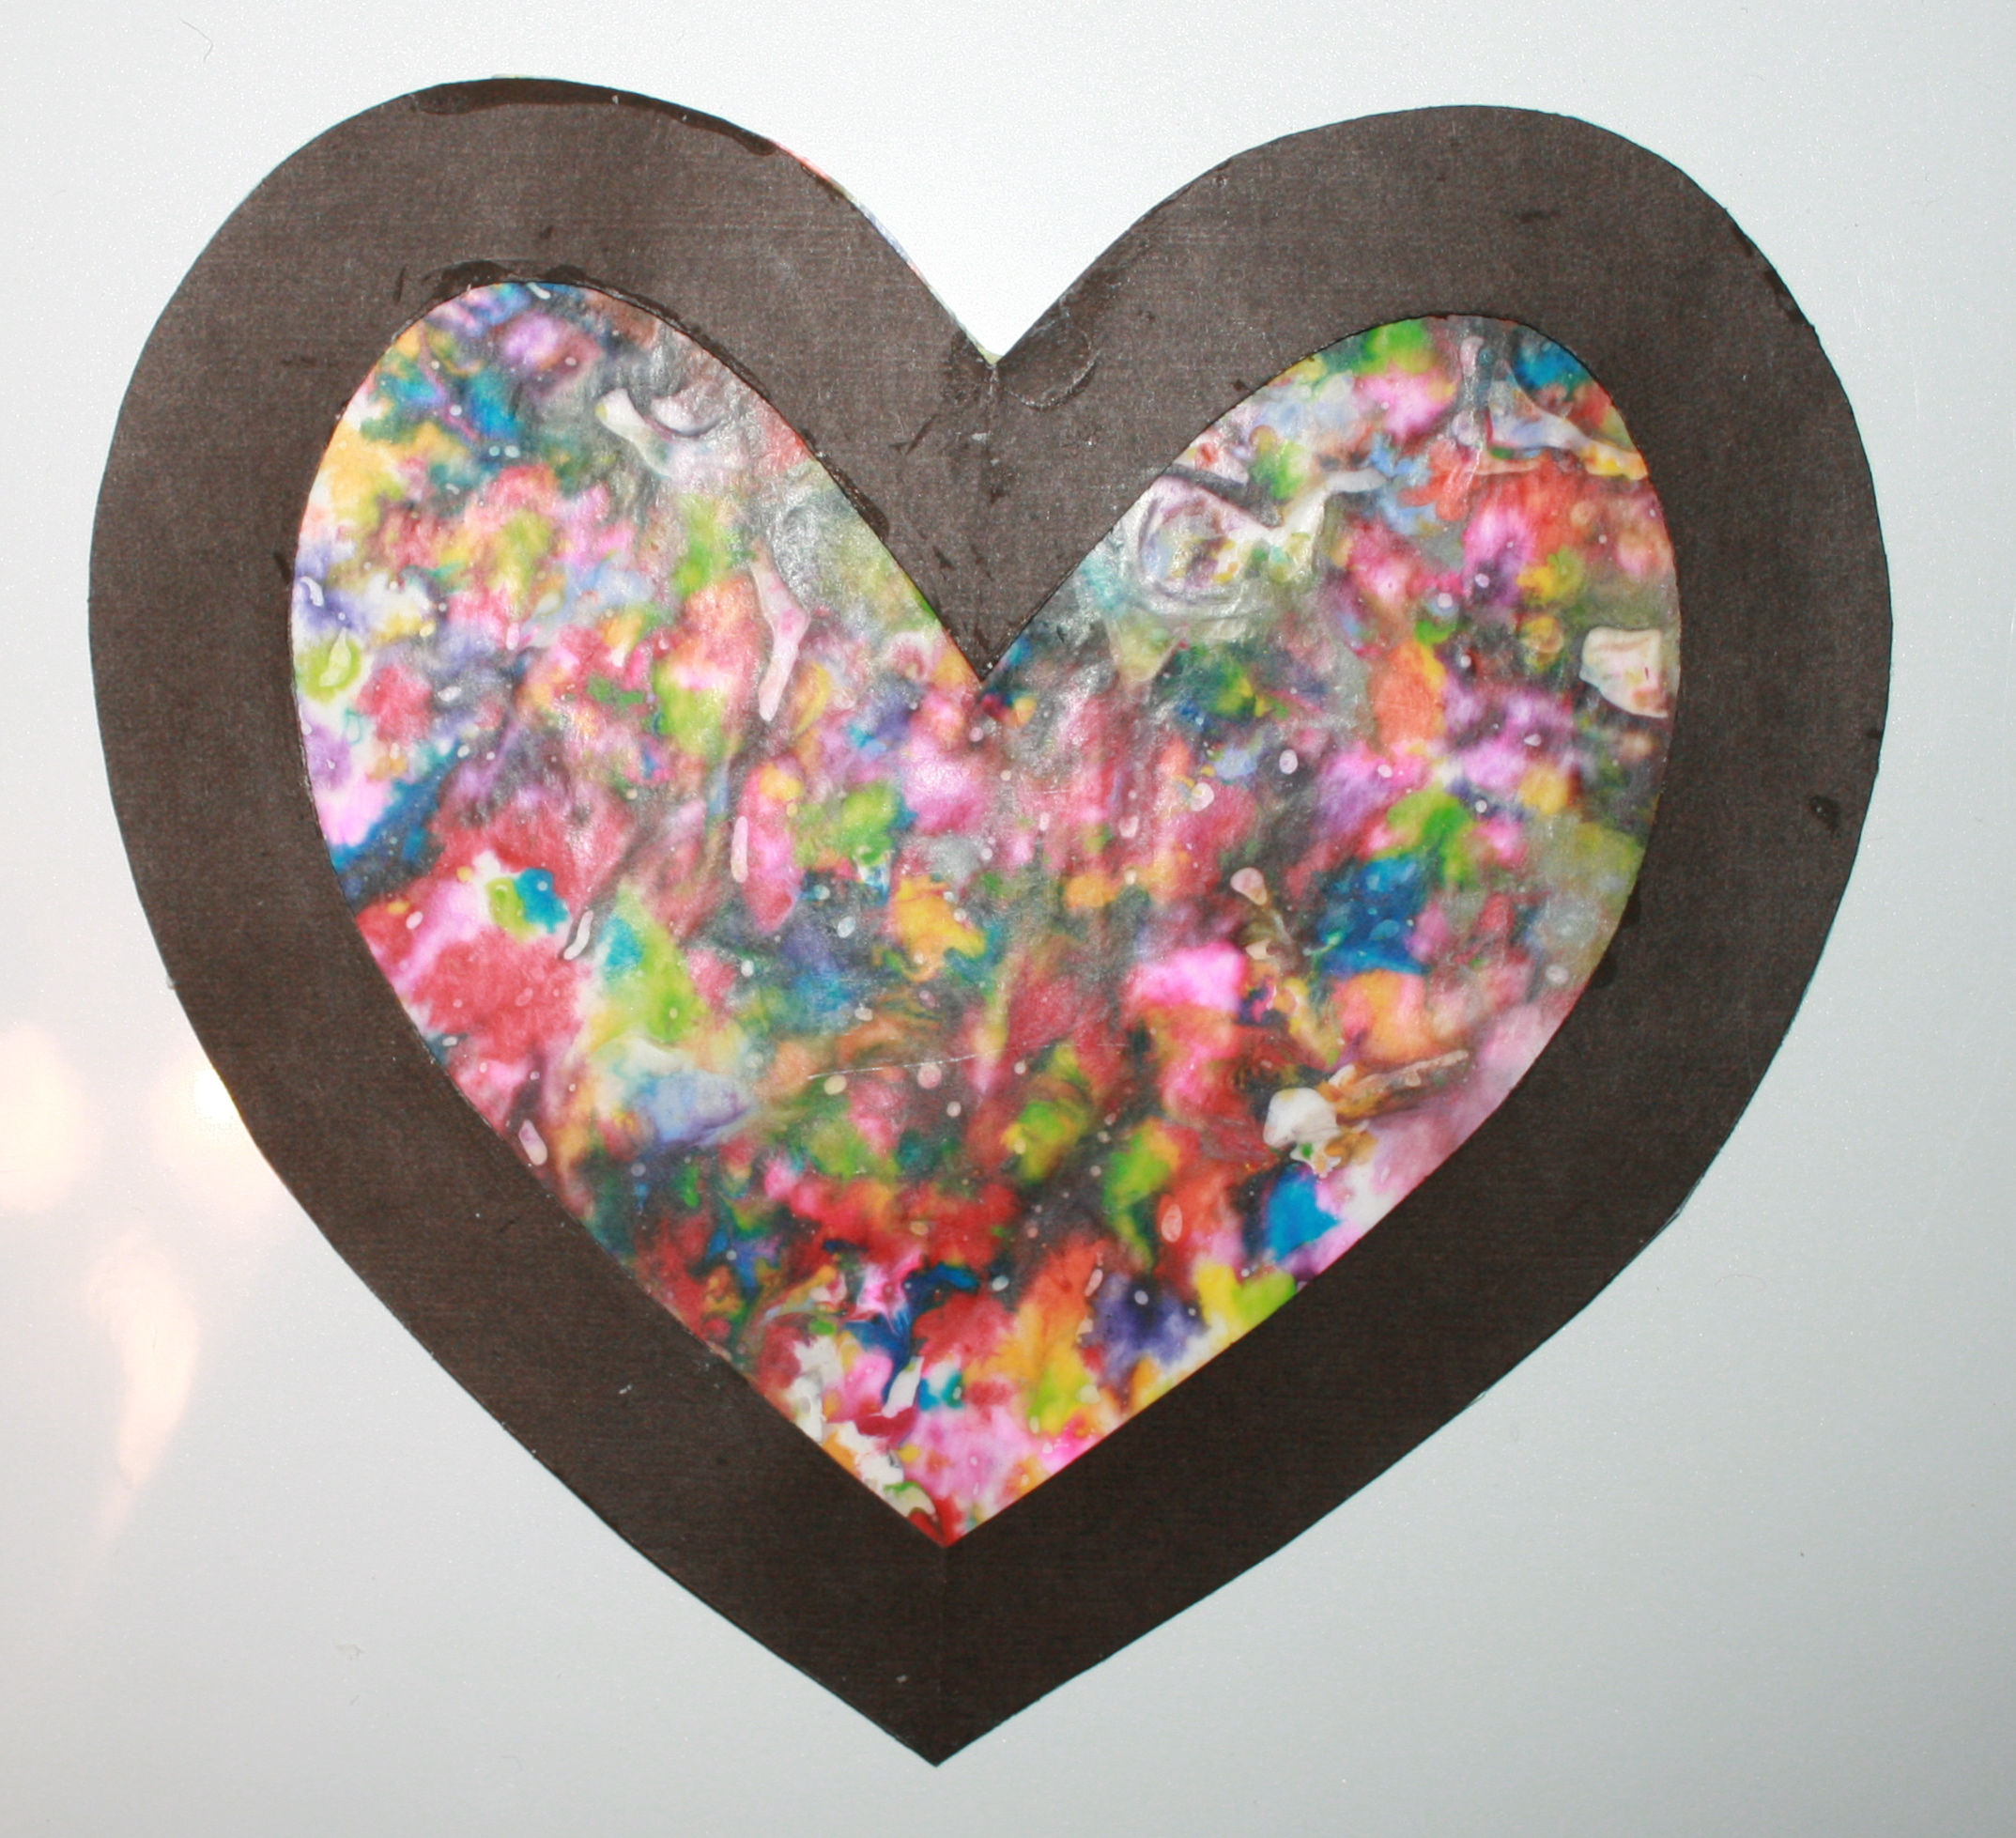 melted crayon hearts, valentine cards, tissue paper hearts, valentine projects, valentine bulletin boards, valentine bulletin board ideas, february bulletin boards, february bulletin board ideas, valentine crafts, valentine art, valentine centers, stained glass valentines, melted crayon art,